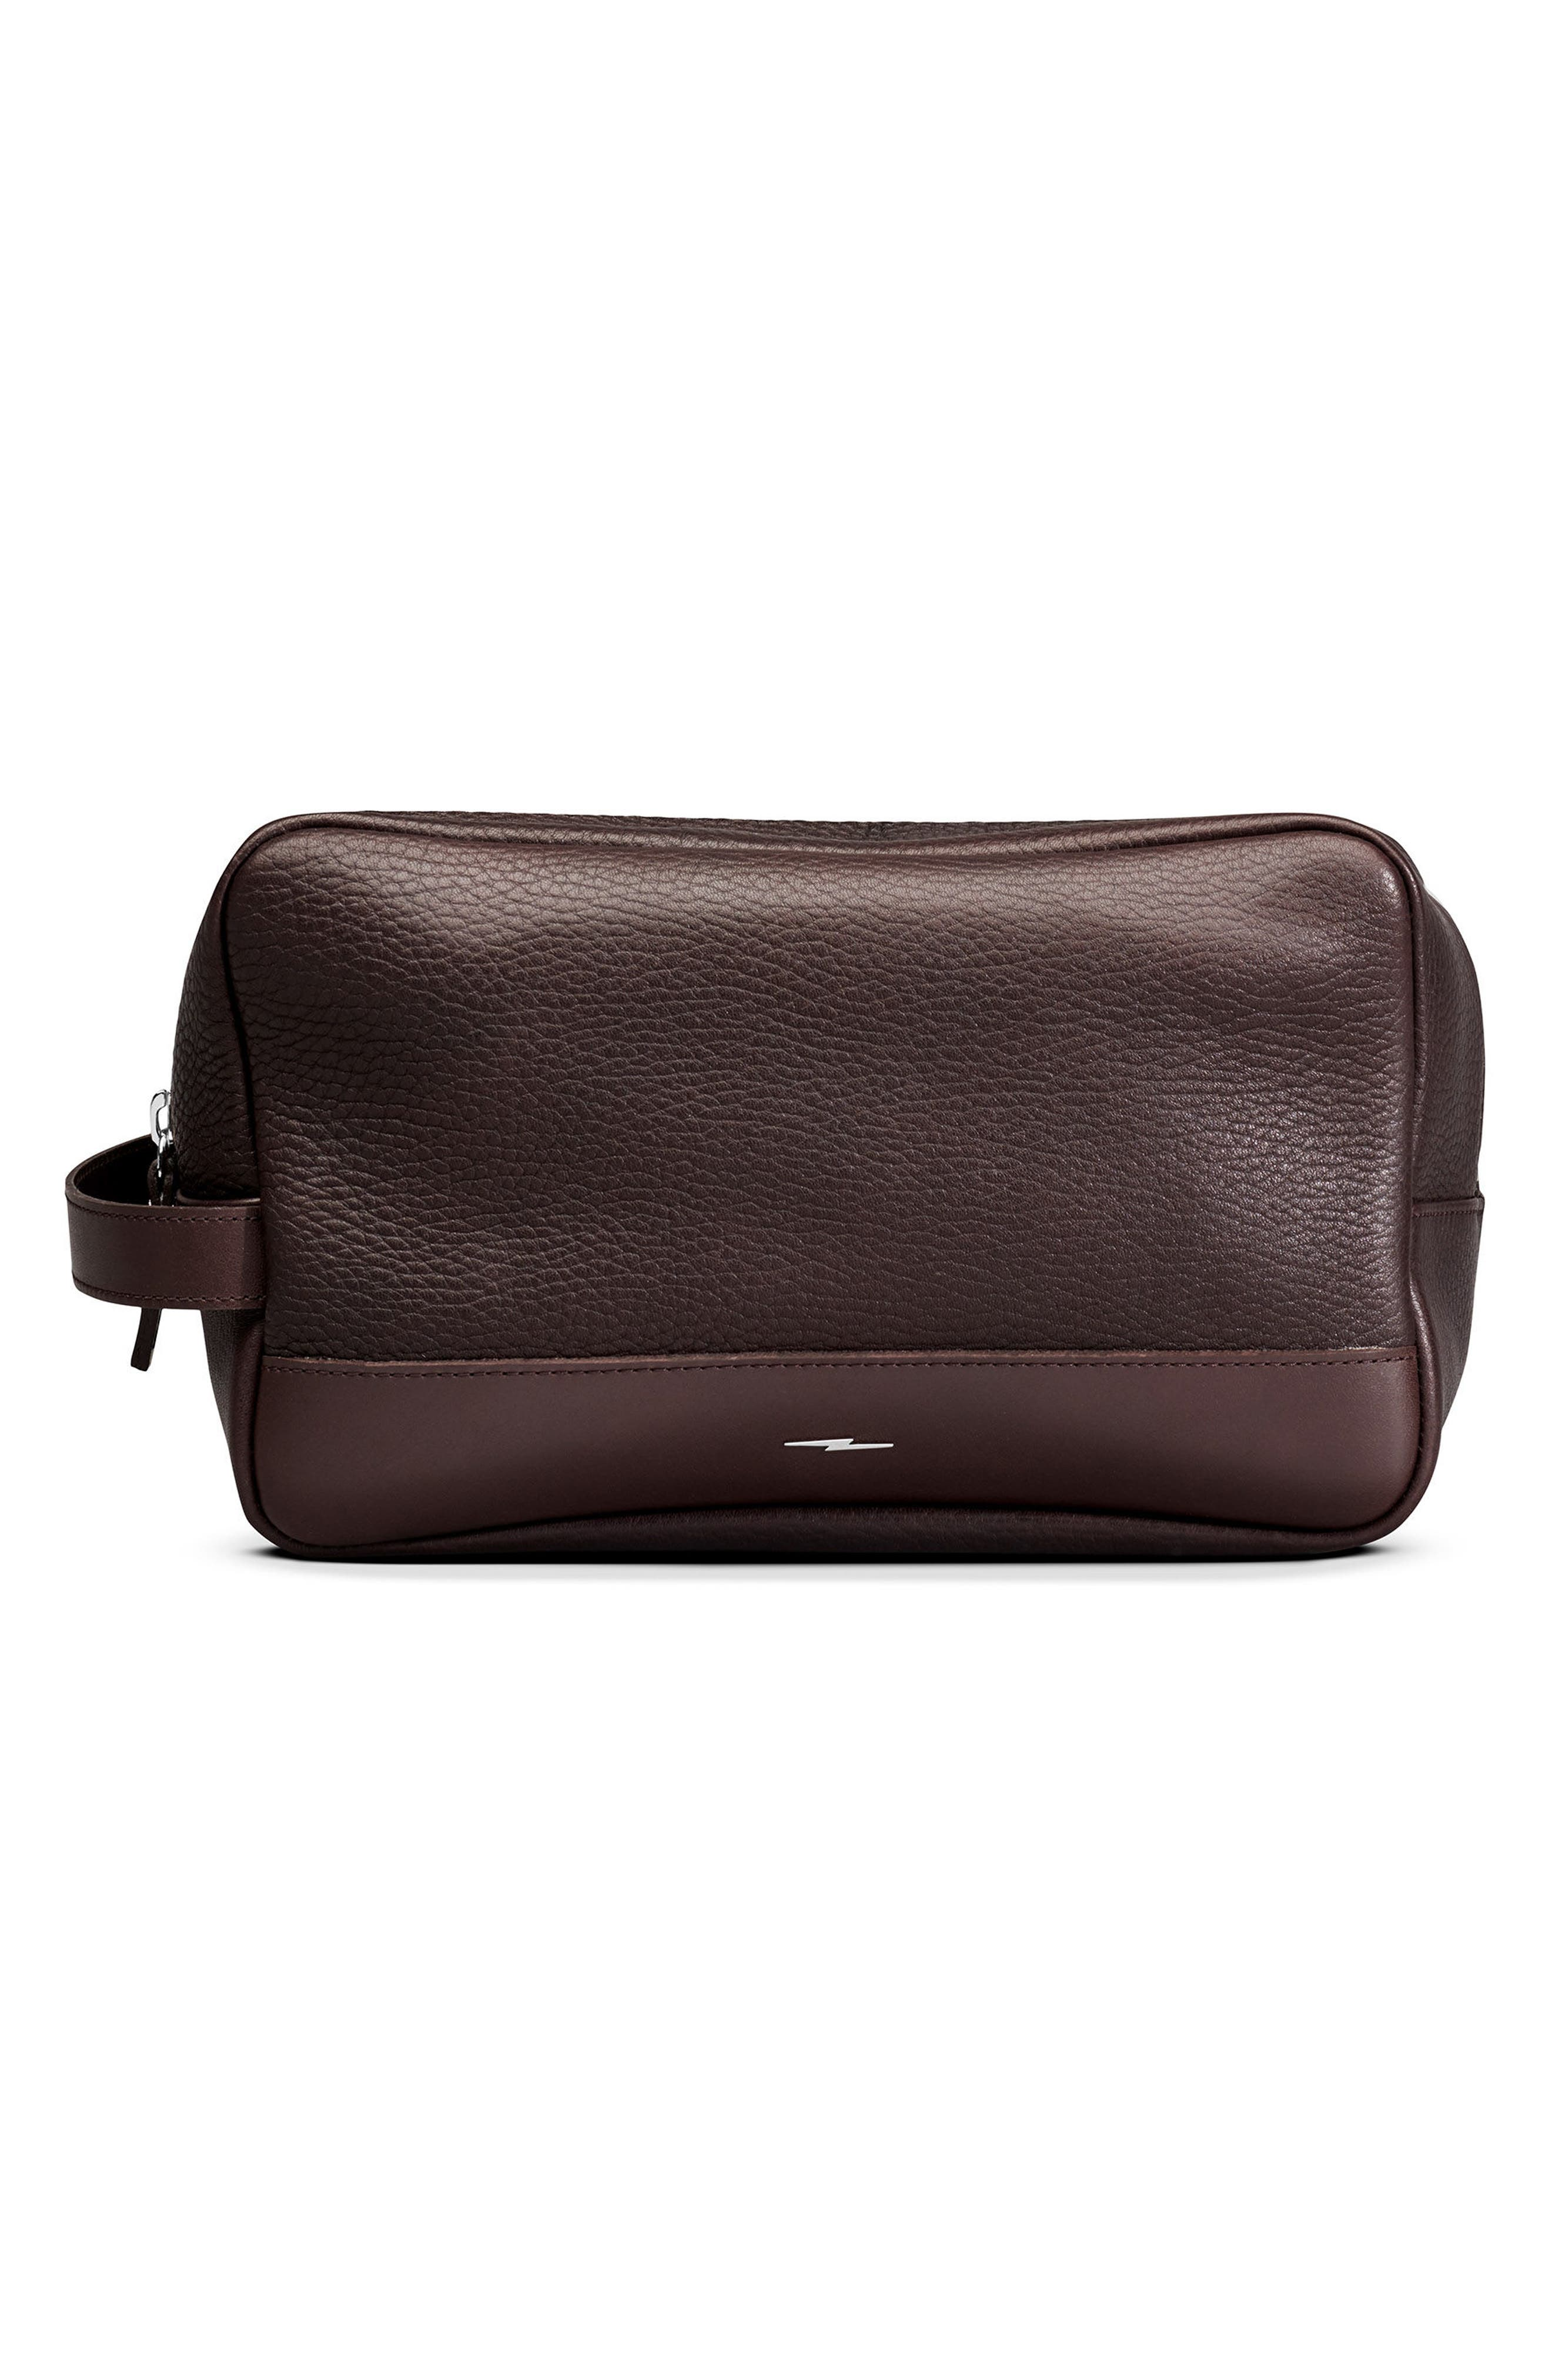 Leather Travel Kit,                             Main thumbnail 1, color,                             Deep Brown